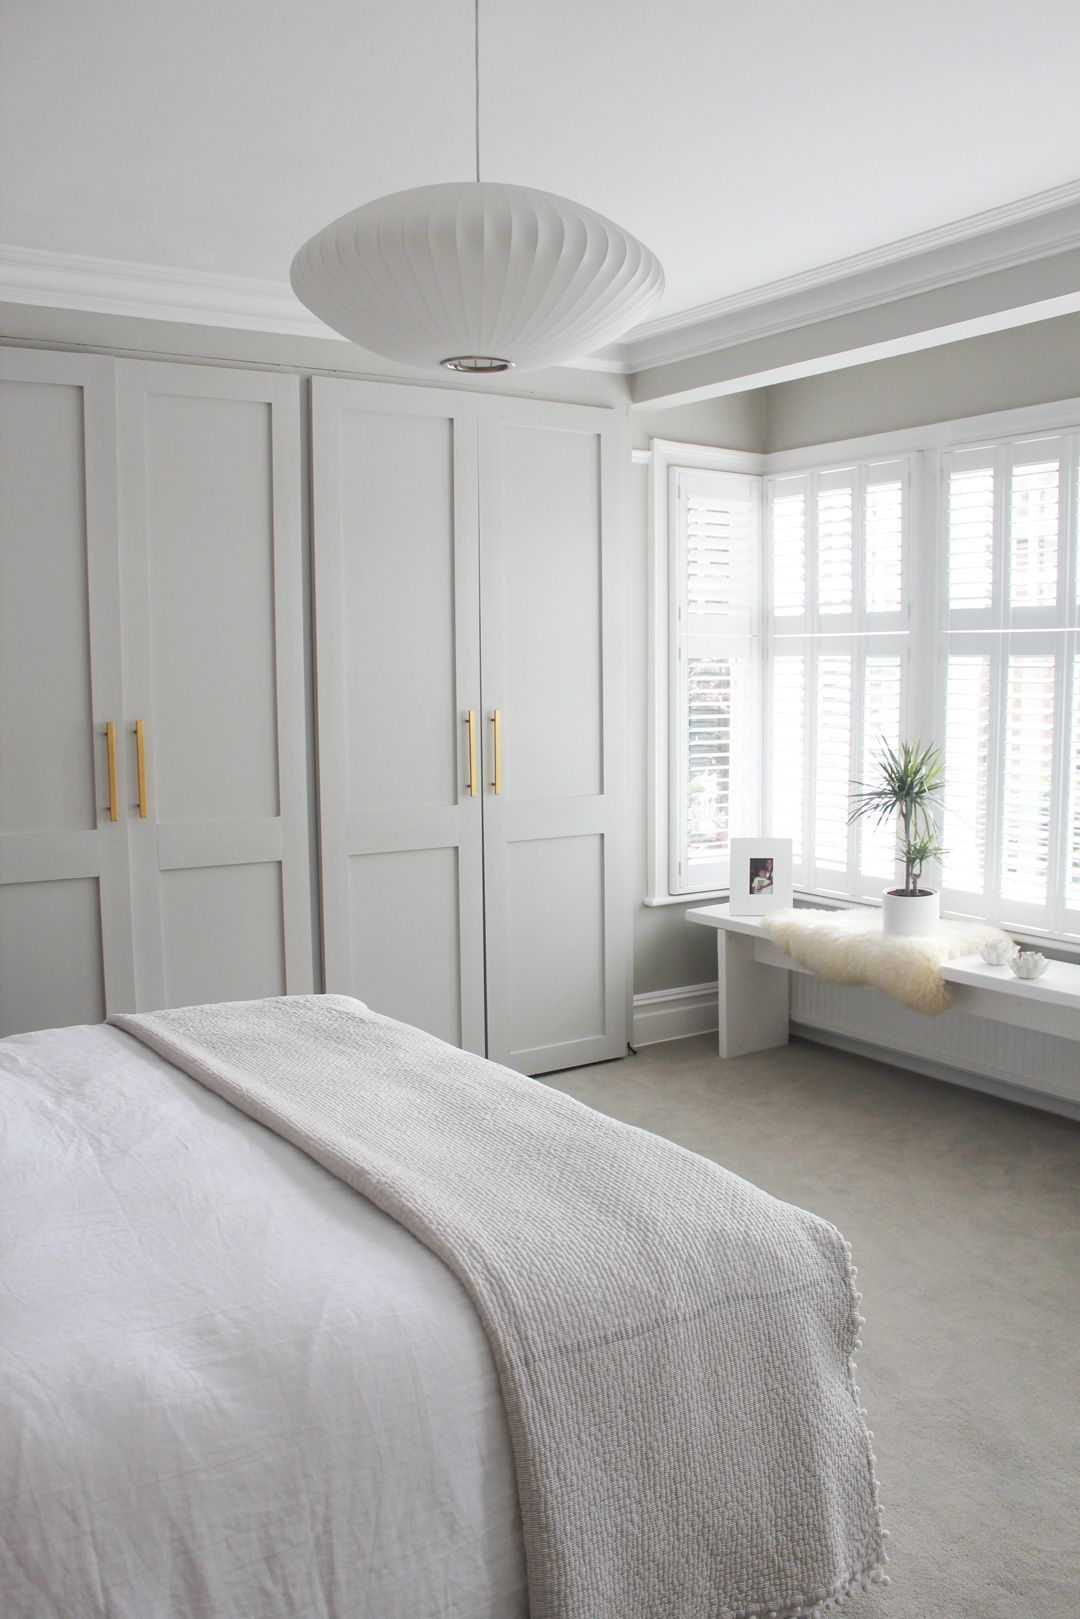 Thanks to These 9 Zen Bedroom Ideas, You May Experience the Best Night's Sleep Ever | Hunker